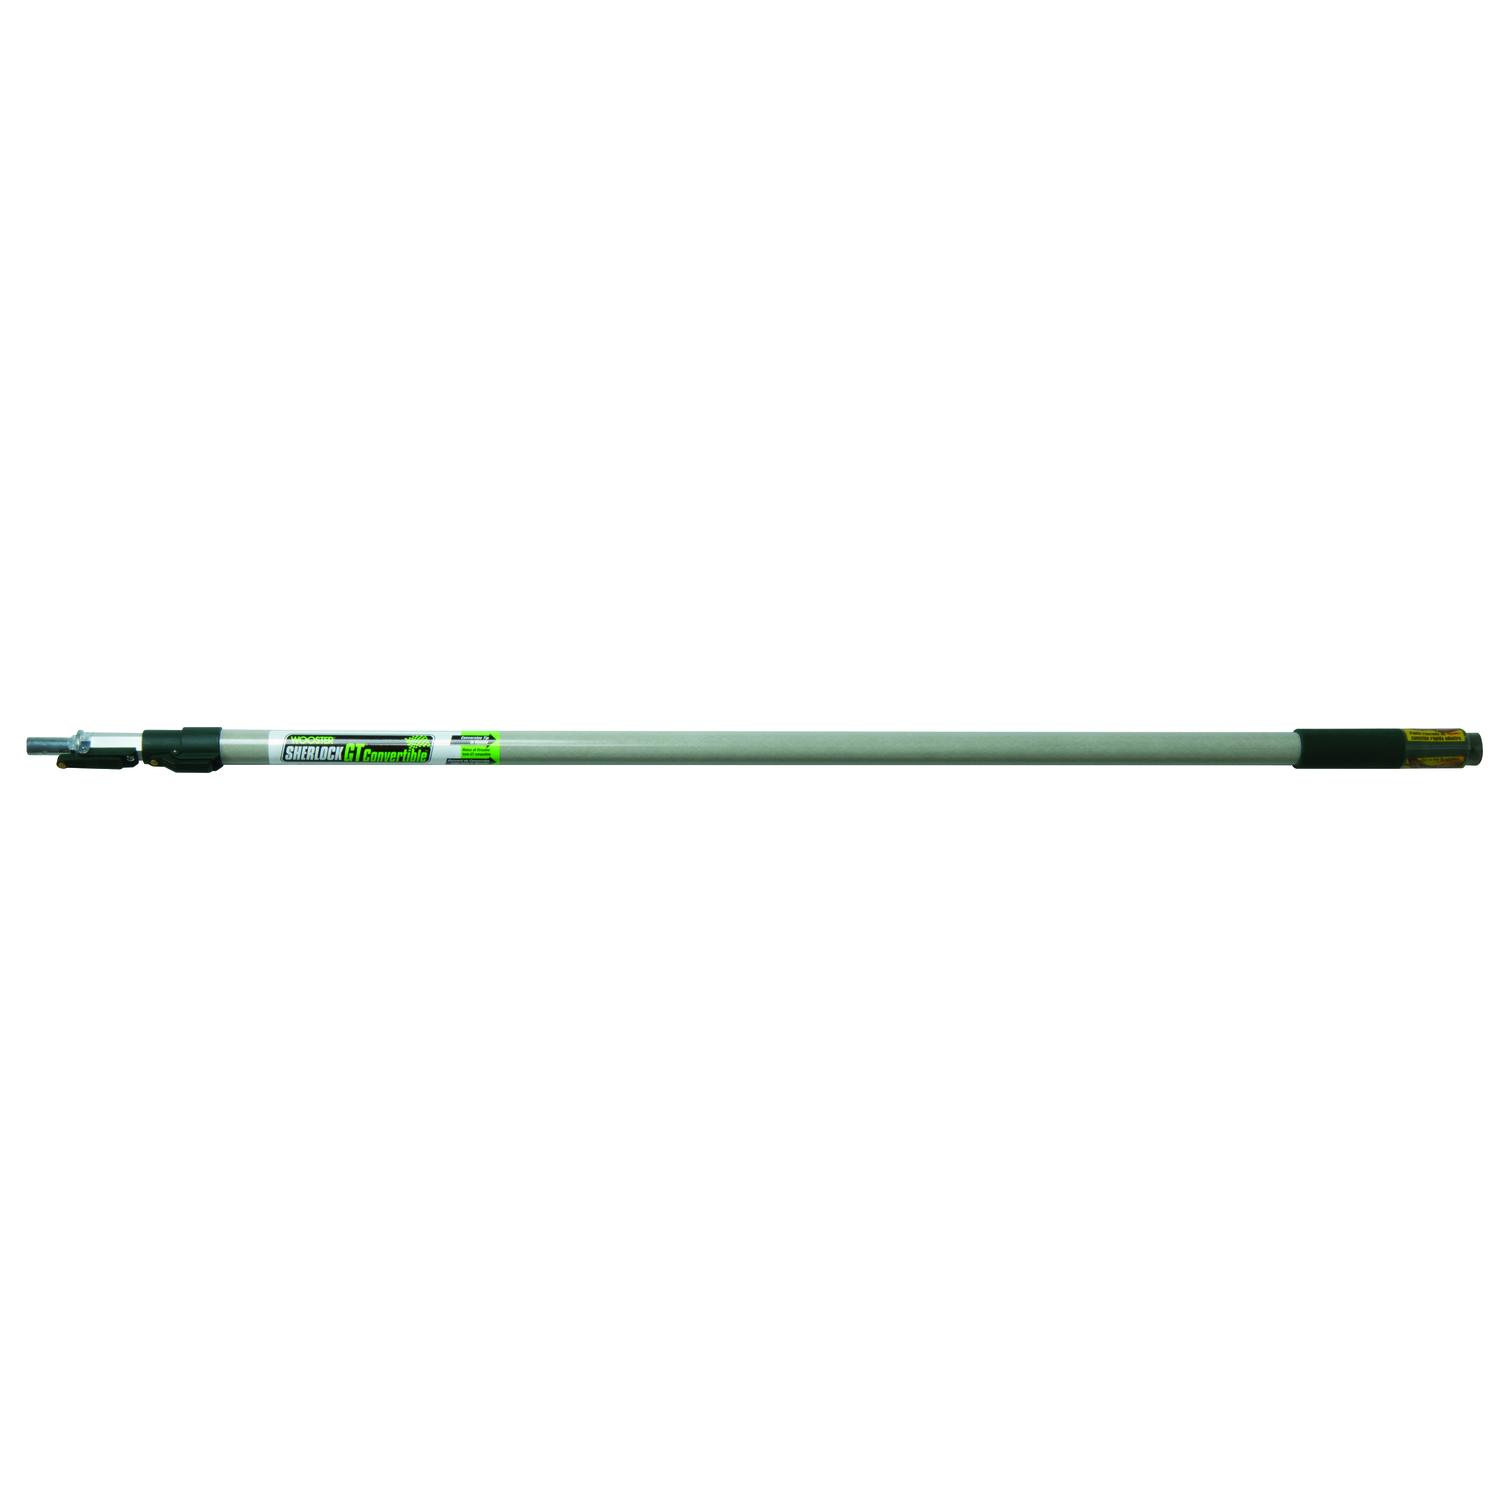 Wooster  Sherlock  Telescoping Black/White  1 in. Dia. x 4-8 ft. L Aluminum  Extension Pole  Black/W